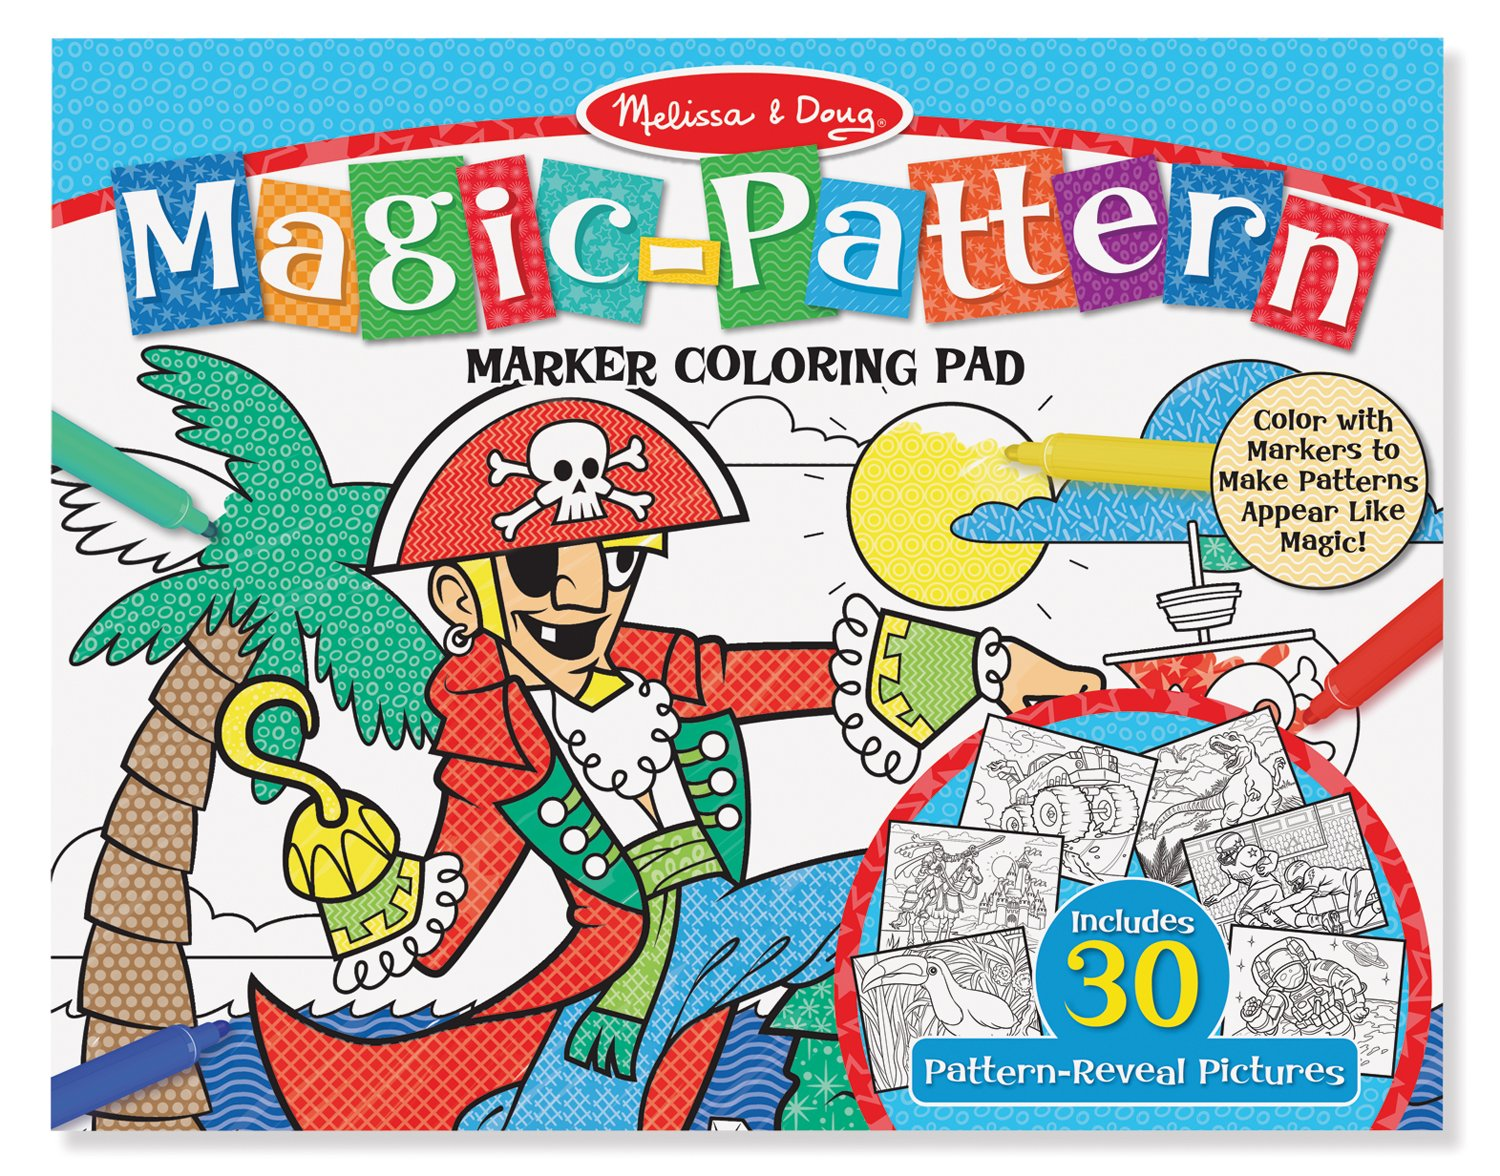 amazoncom melissa doug magic pattern marker kids coloring pad pirates sports castles and more melissa doug toys games - Magic Marker Coloring Book